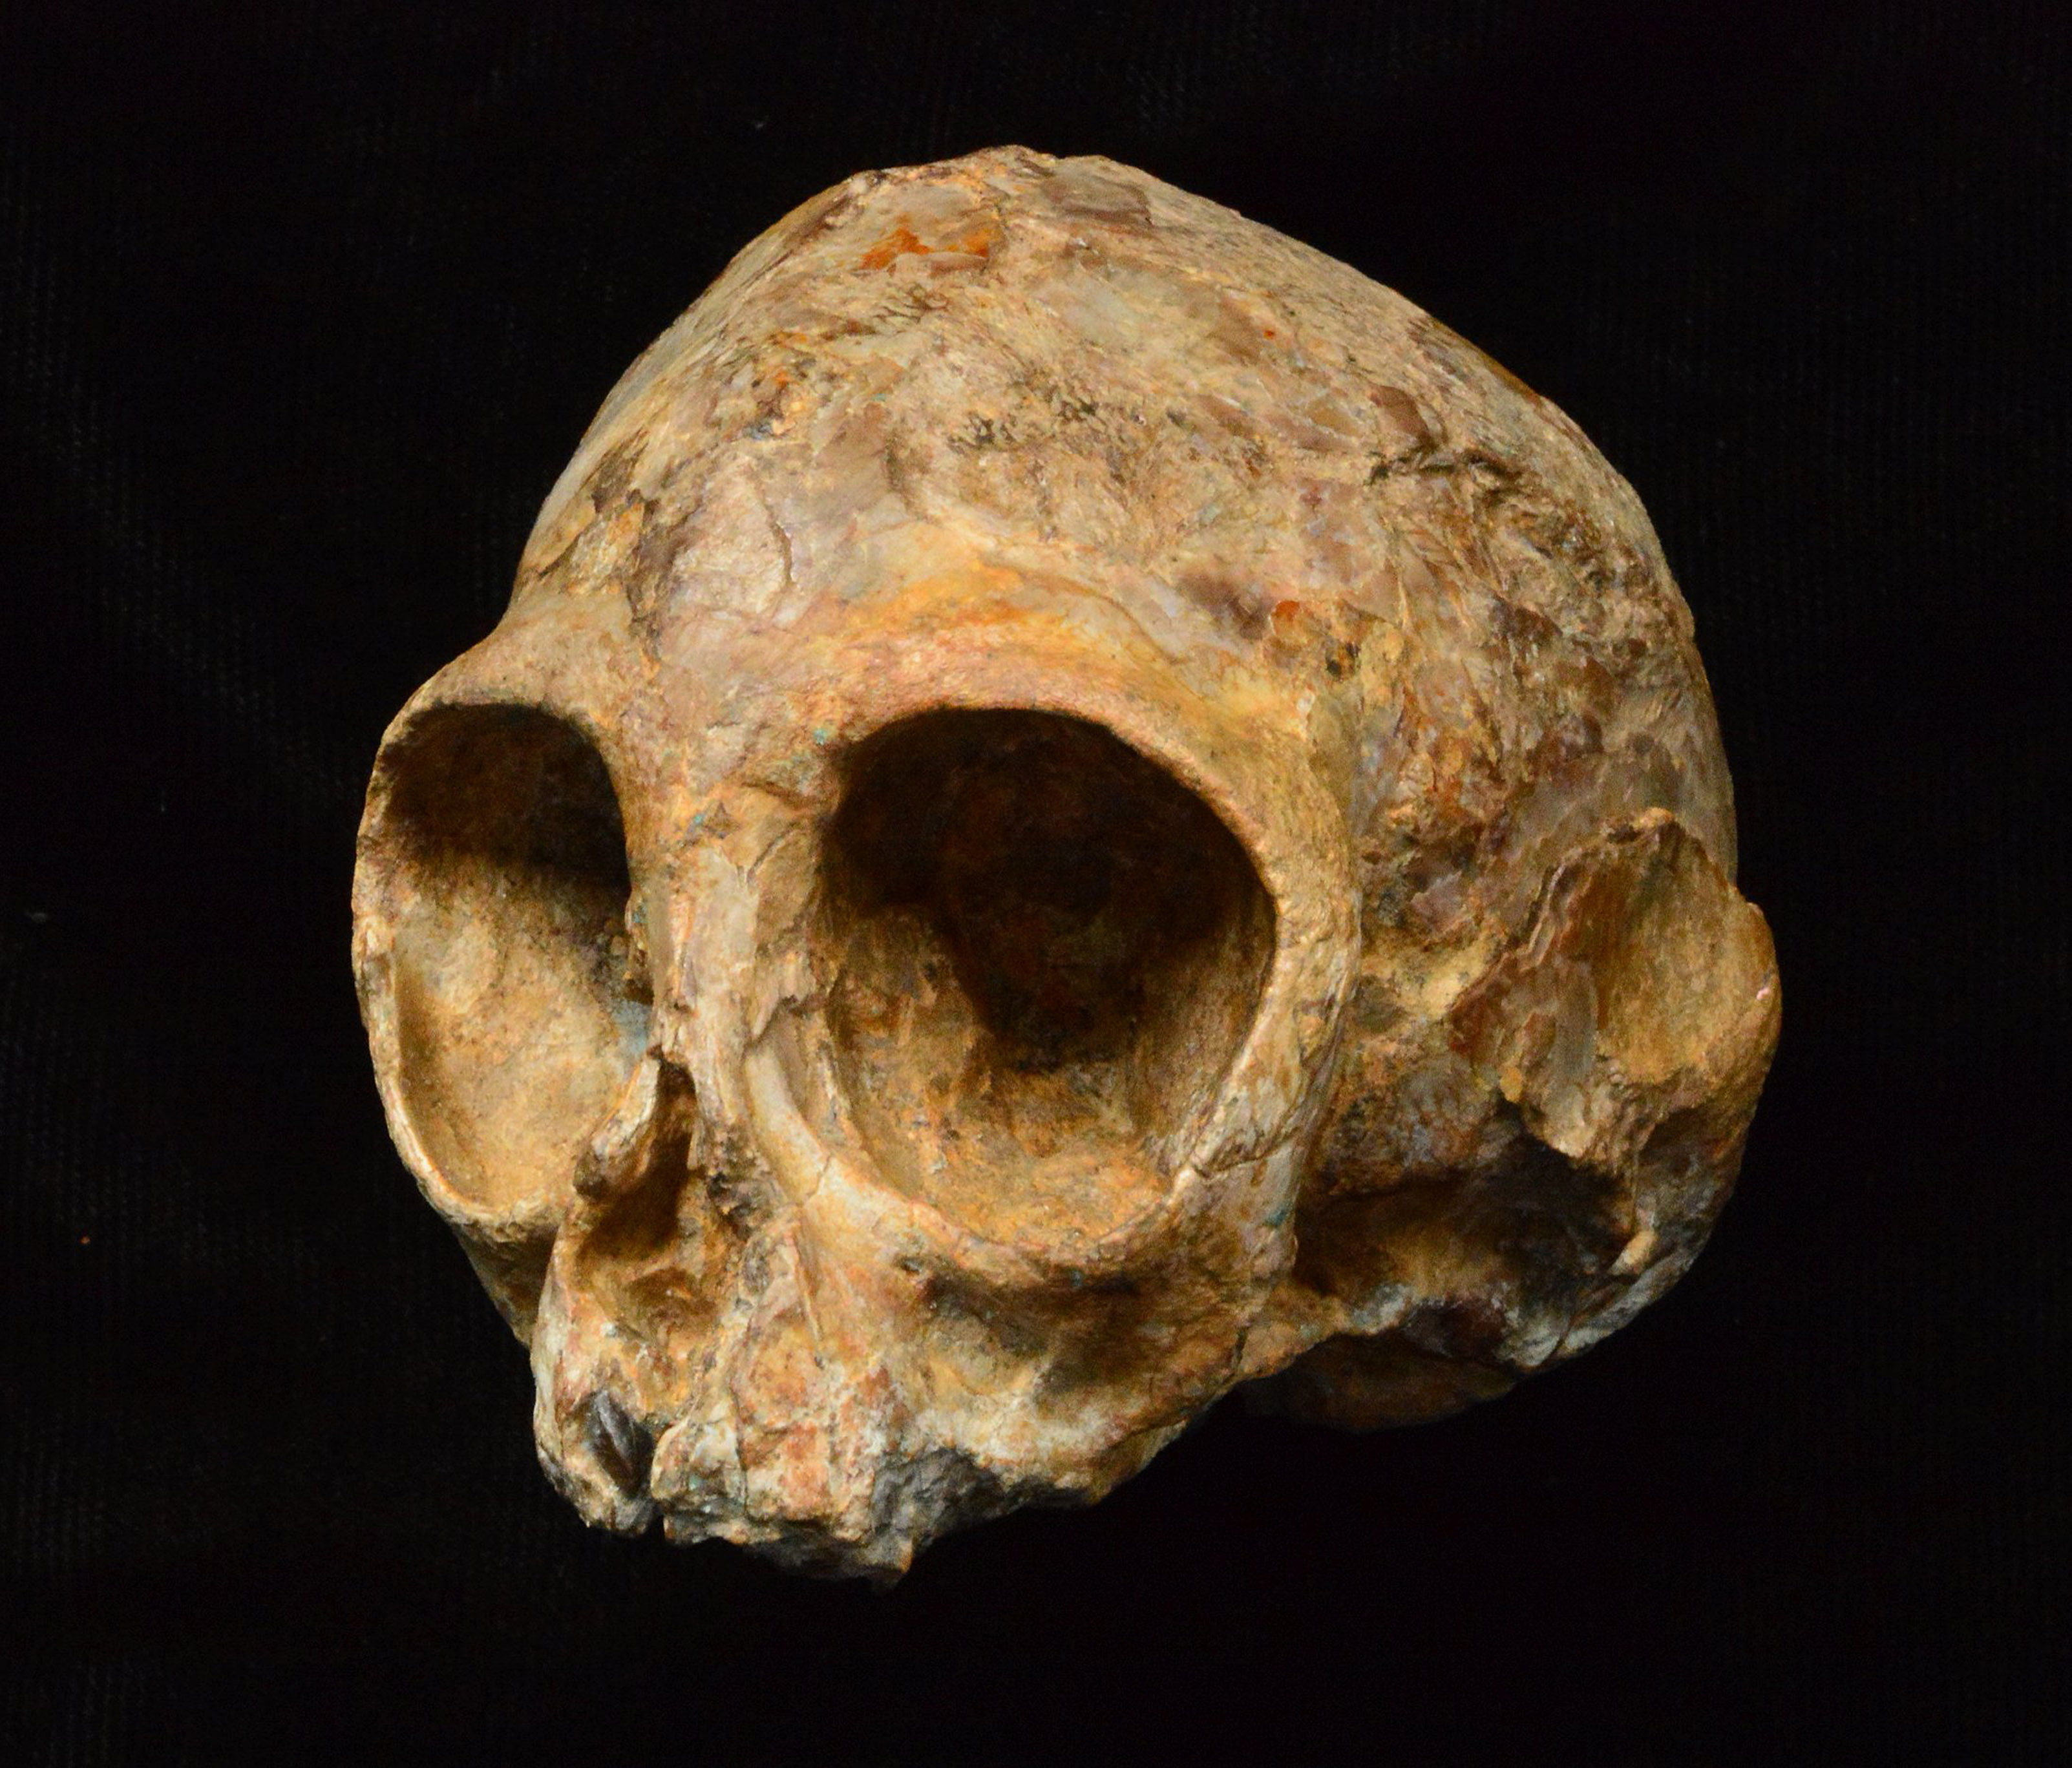 Embargoed to 1800 Wednesday August 9 Undated handout photo issued by the Leakey Foundation of the skull of Alesi, an extinct African ape that lived 13 million years ago which may shed light on the mystery of human origins.